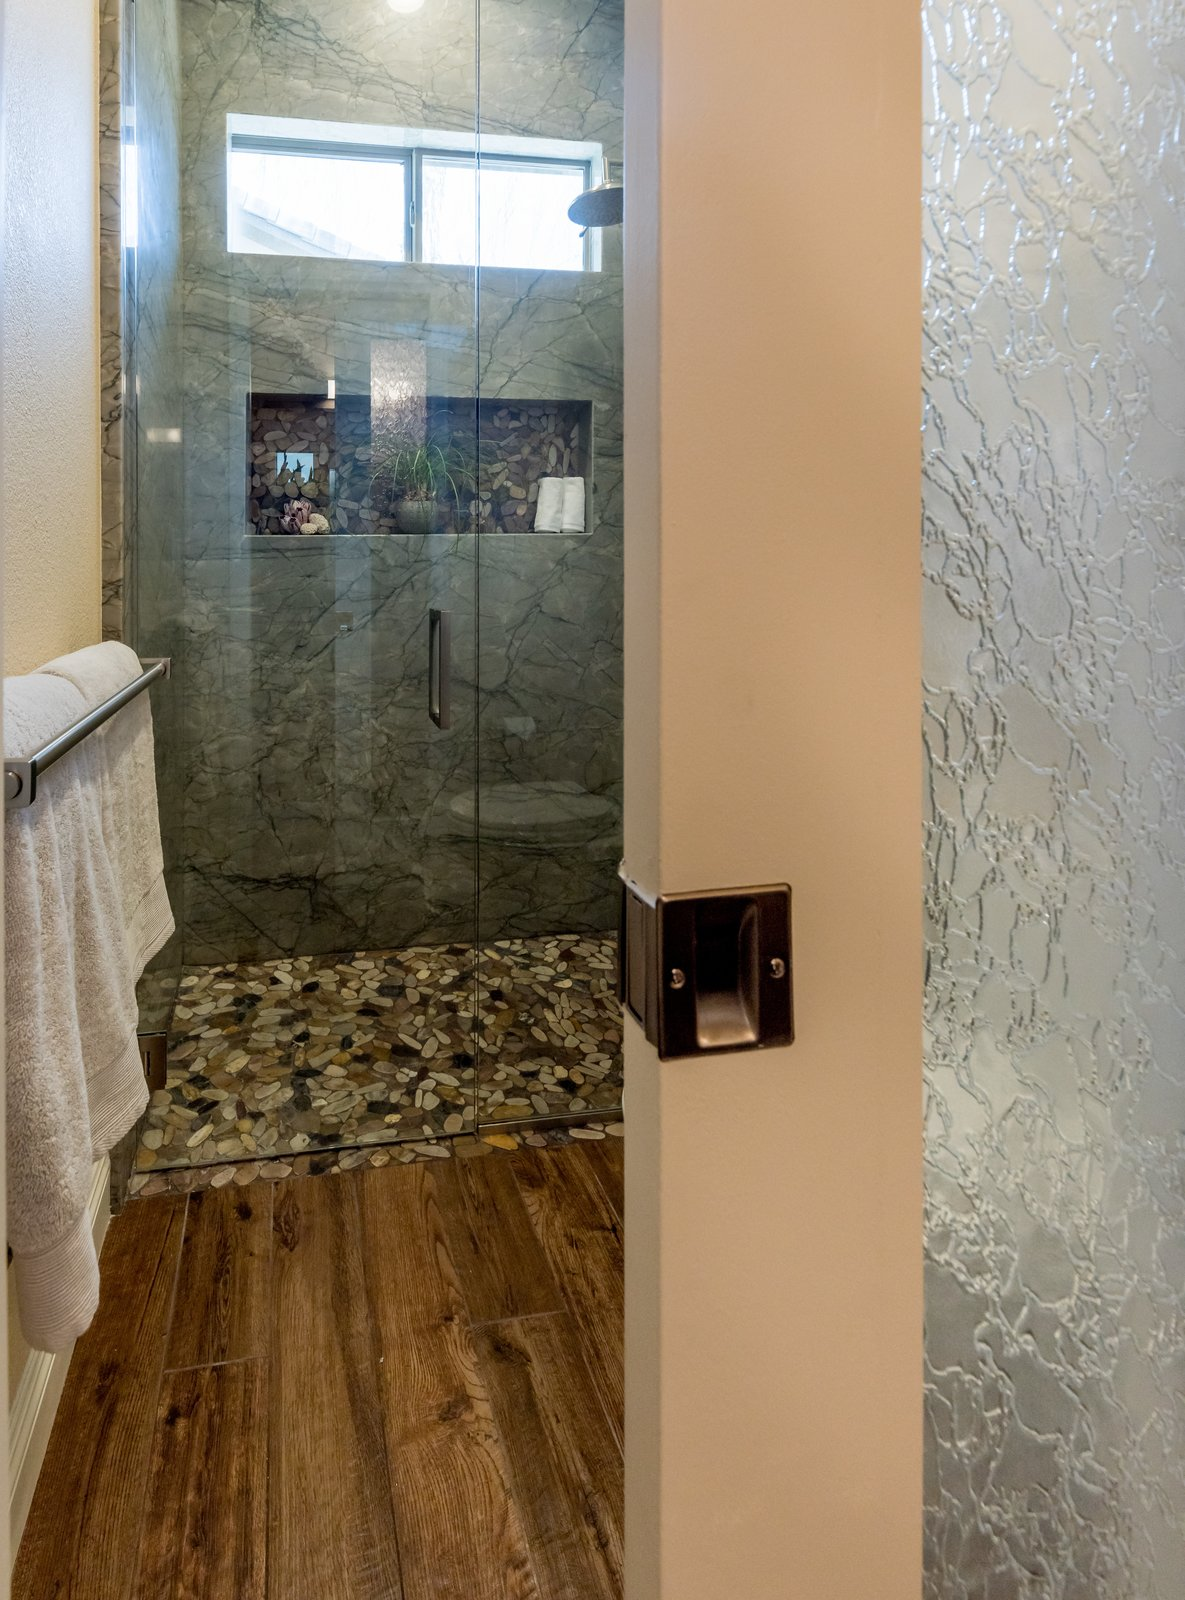 Bath Room, Quartzite Counter, Full Shower, Undermount Sink, Porcelain Tile Floor, Ceiling Lighting, Pendant Lighting, Recessed Lighting, Stone Slab Wall, and One Piece Toilet  Spa Escape